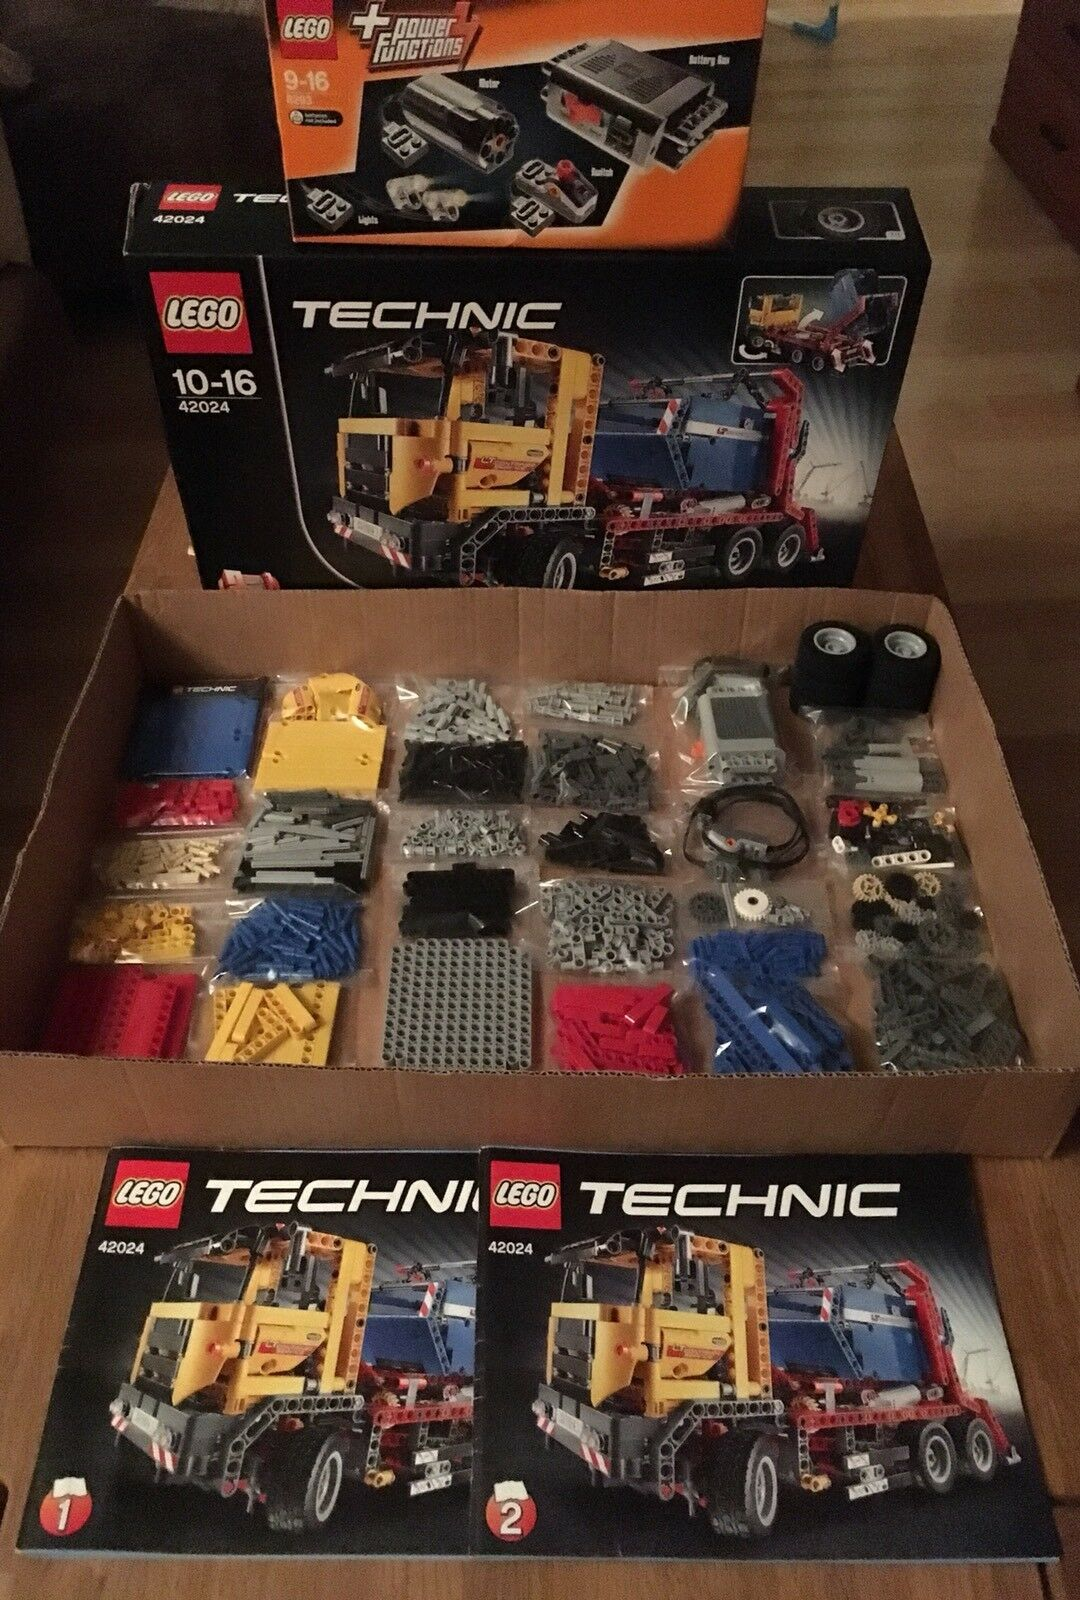 Lego Technic 42024 contenedores Truck. incl. 8293 Power Funktions set. 100% completo